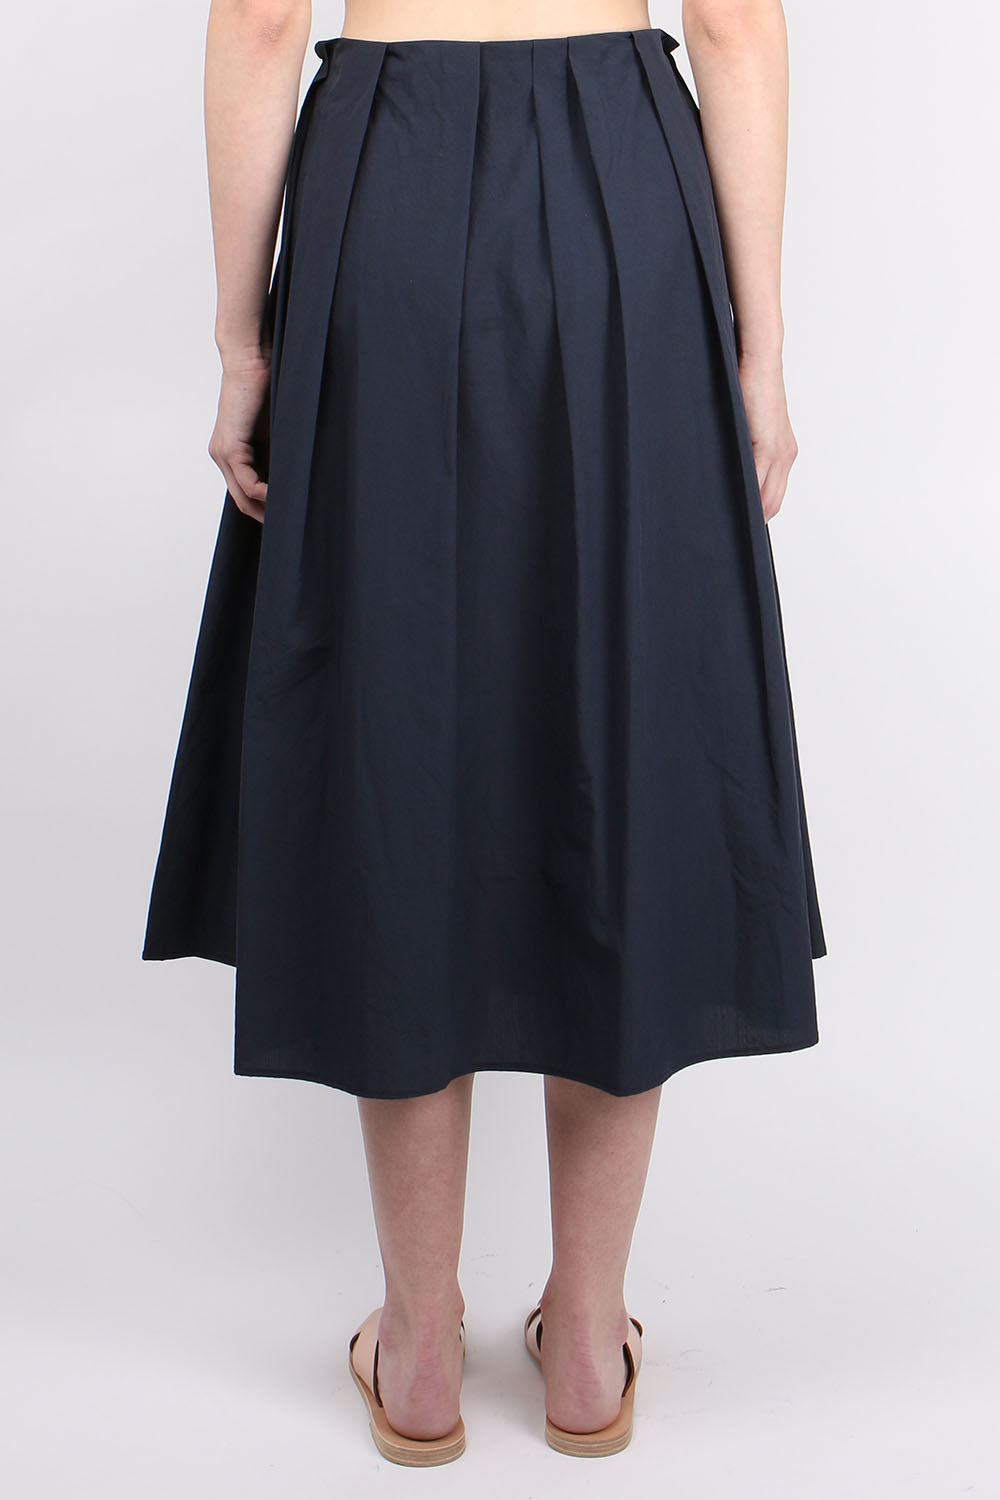 apunto b Poplin Gathered Waist Skirt